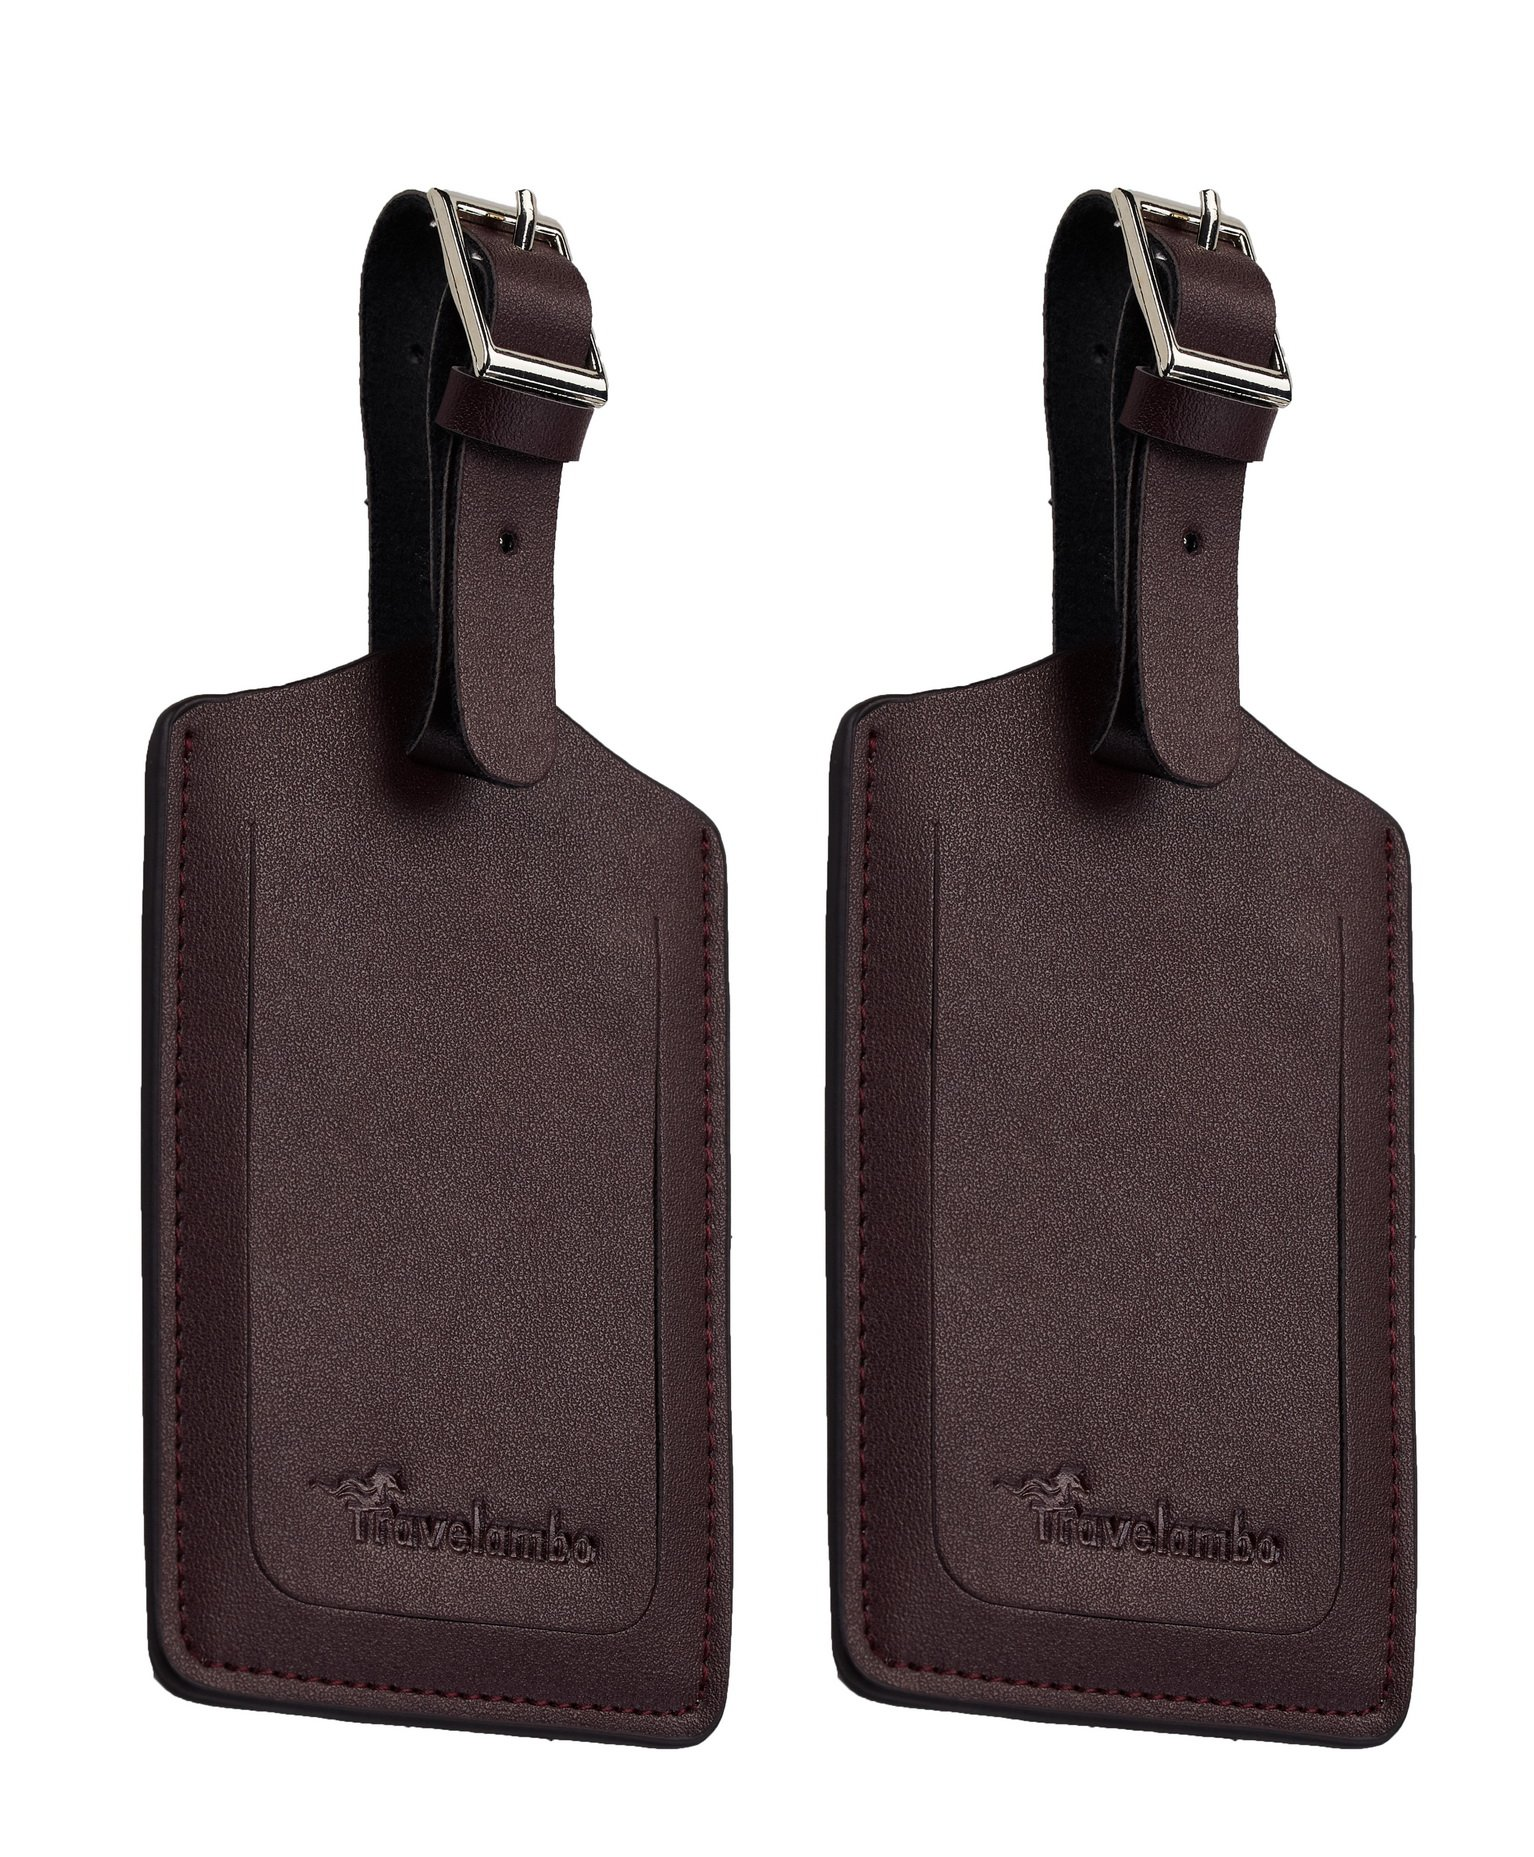 Travelambo Leather Luggage Bag Tags (Coffee 2385 Red Coal Coffee) by Travelambo (Image #3)